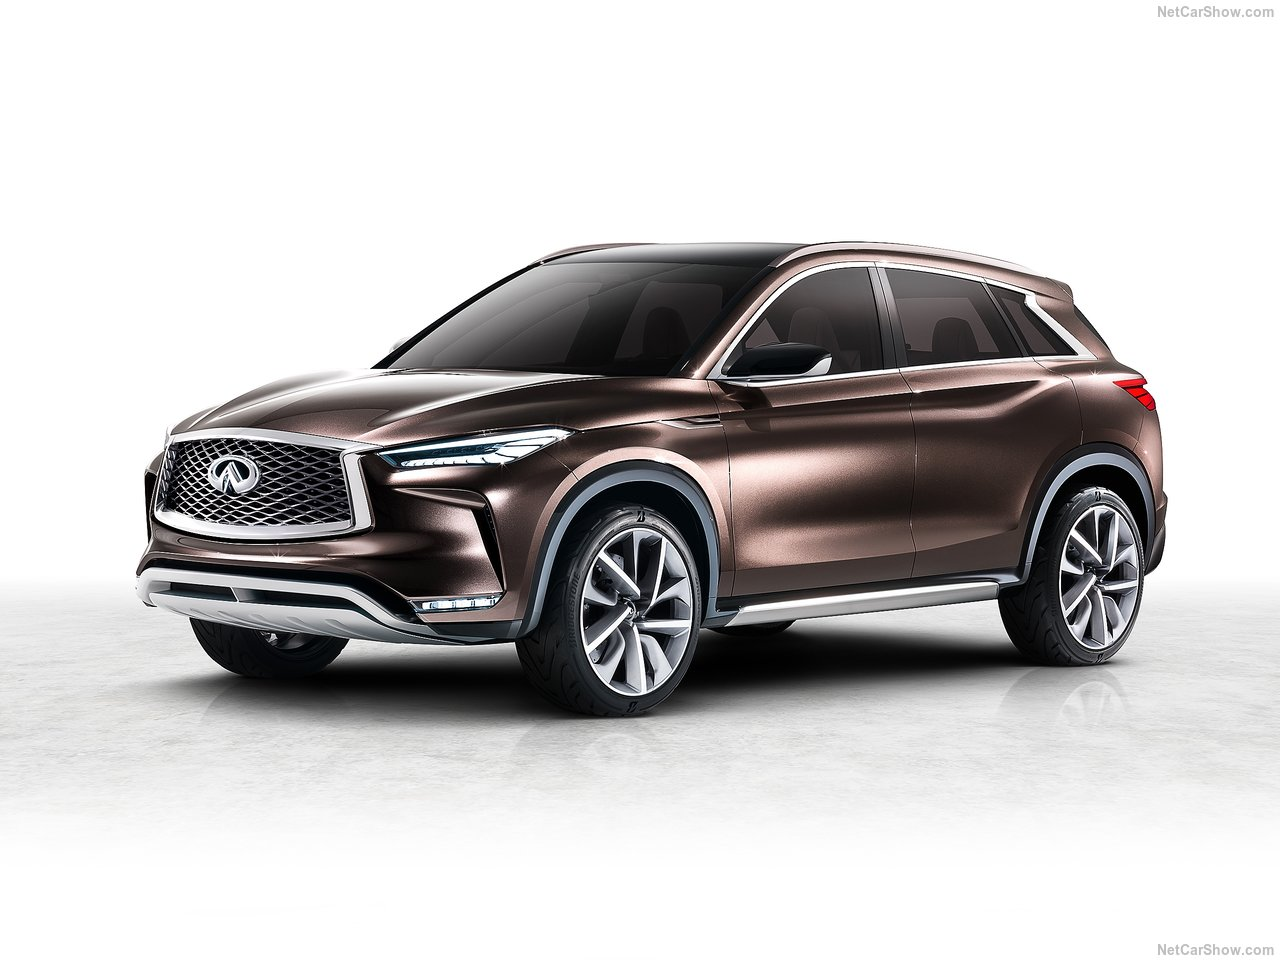 2017 Infiniti QX50 Concept, Price, Release date, Performance